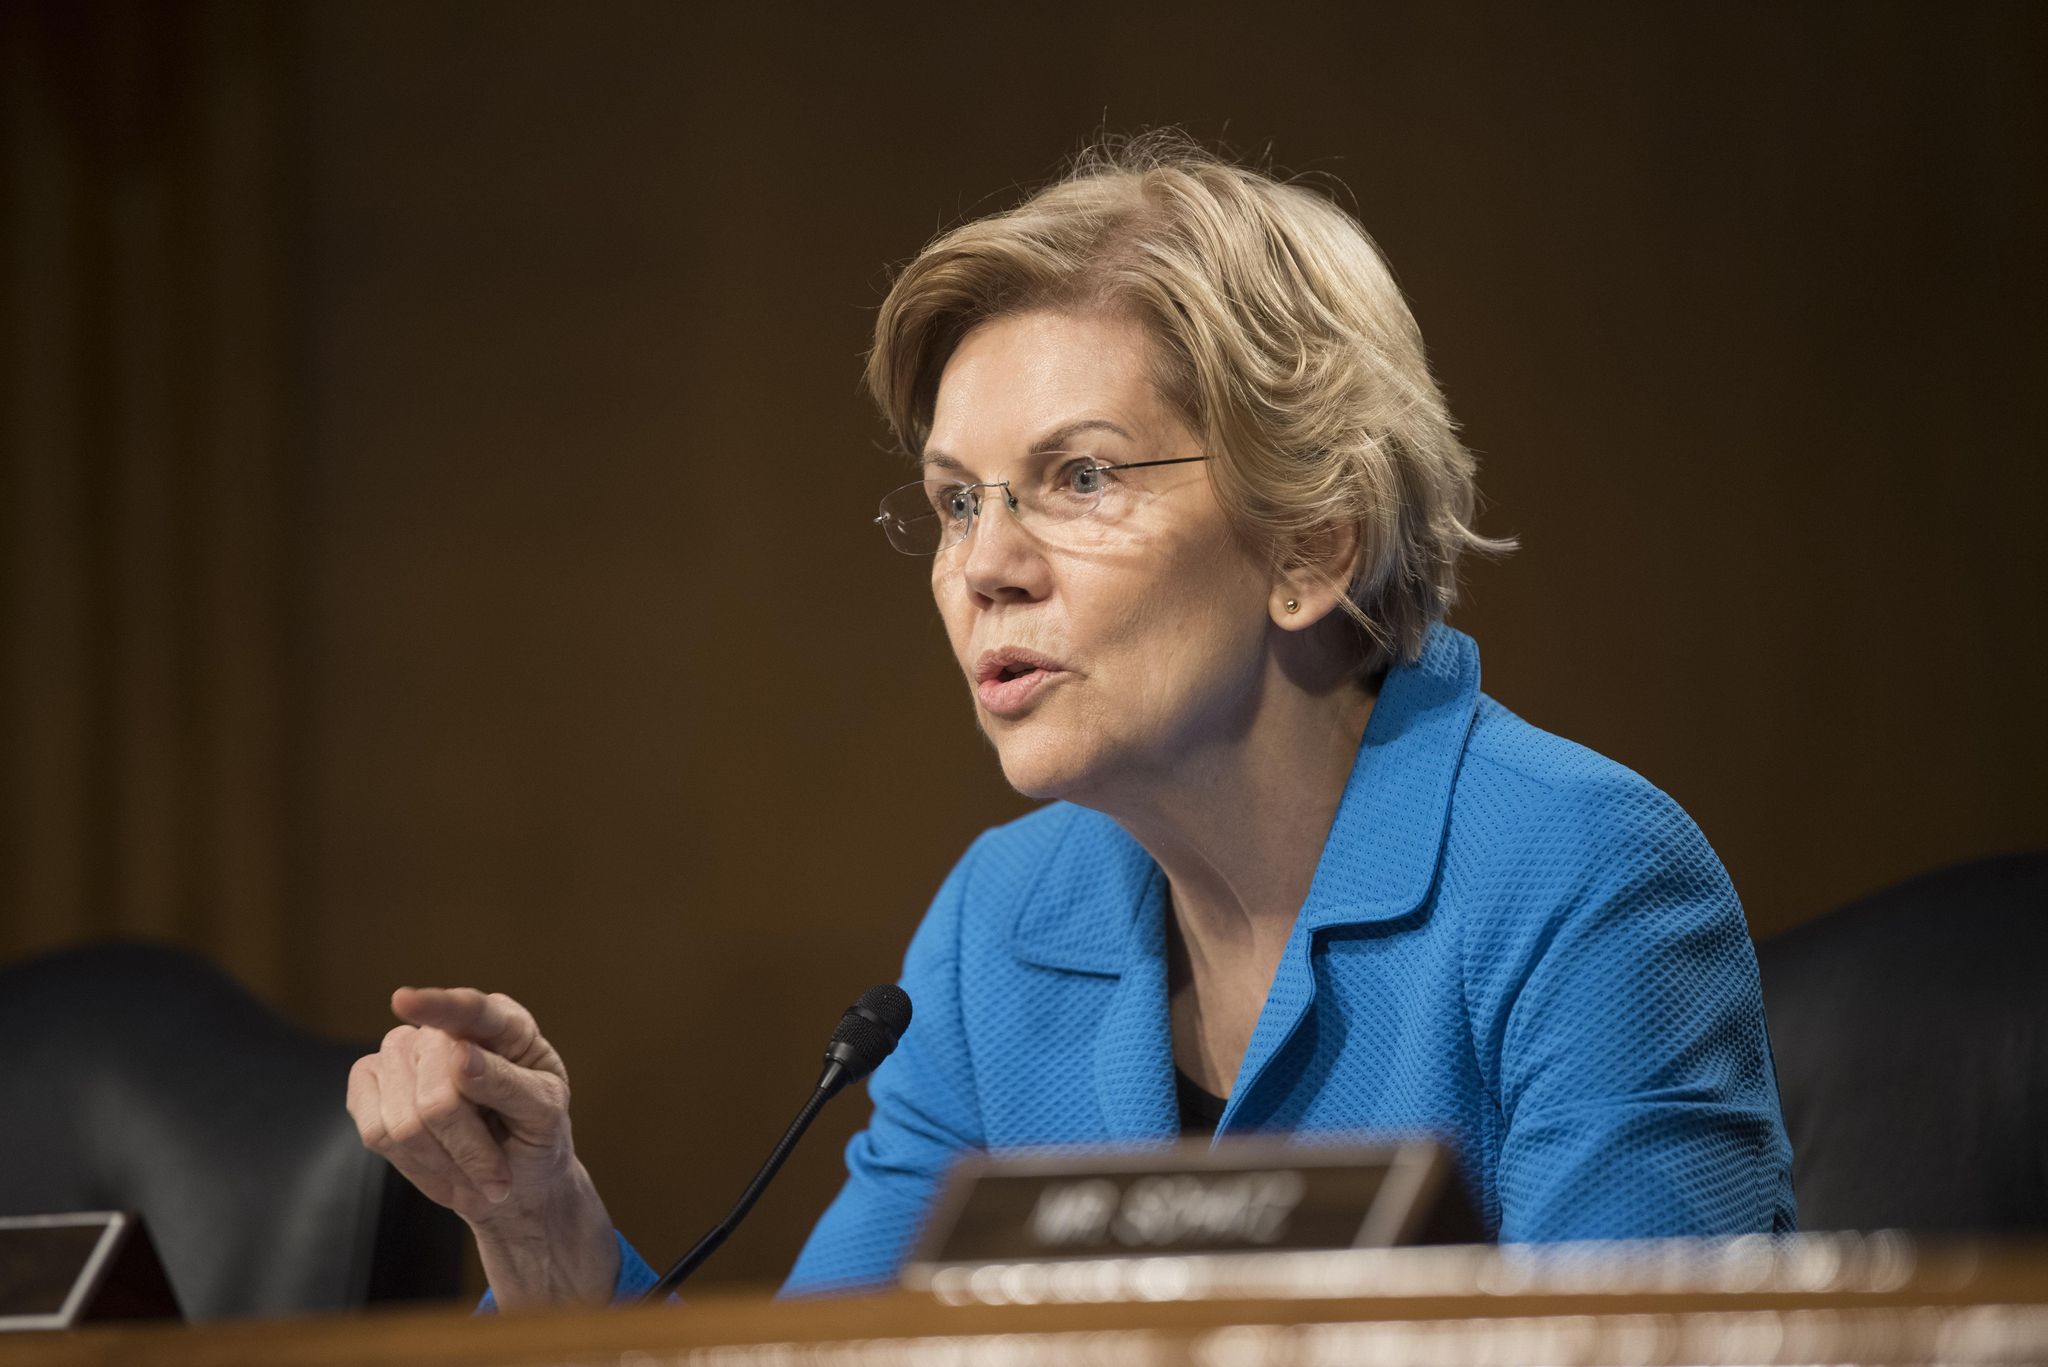 Elizabeth Warren offered enrollment by the Una Nation, an unrecognized 'mixed-blood' tribe